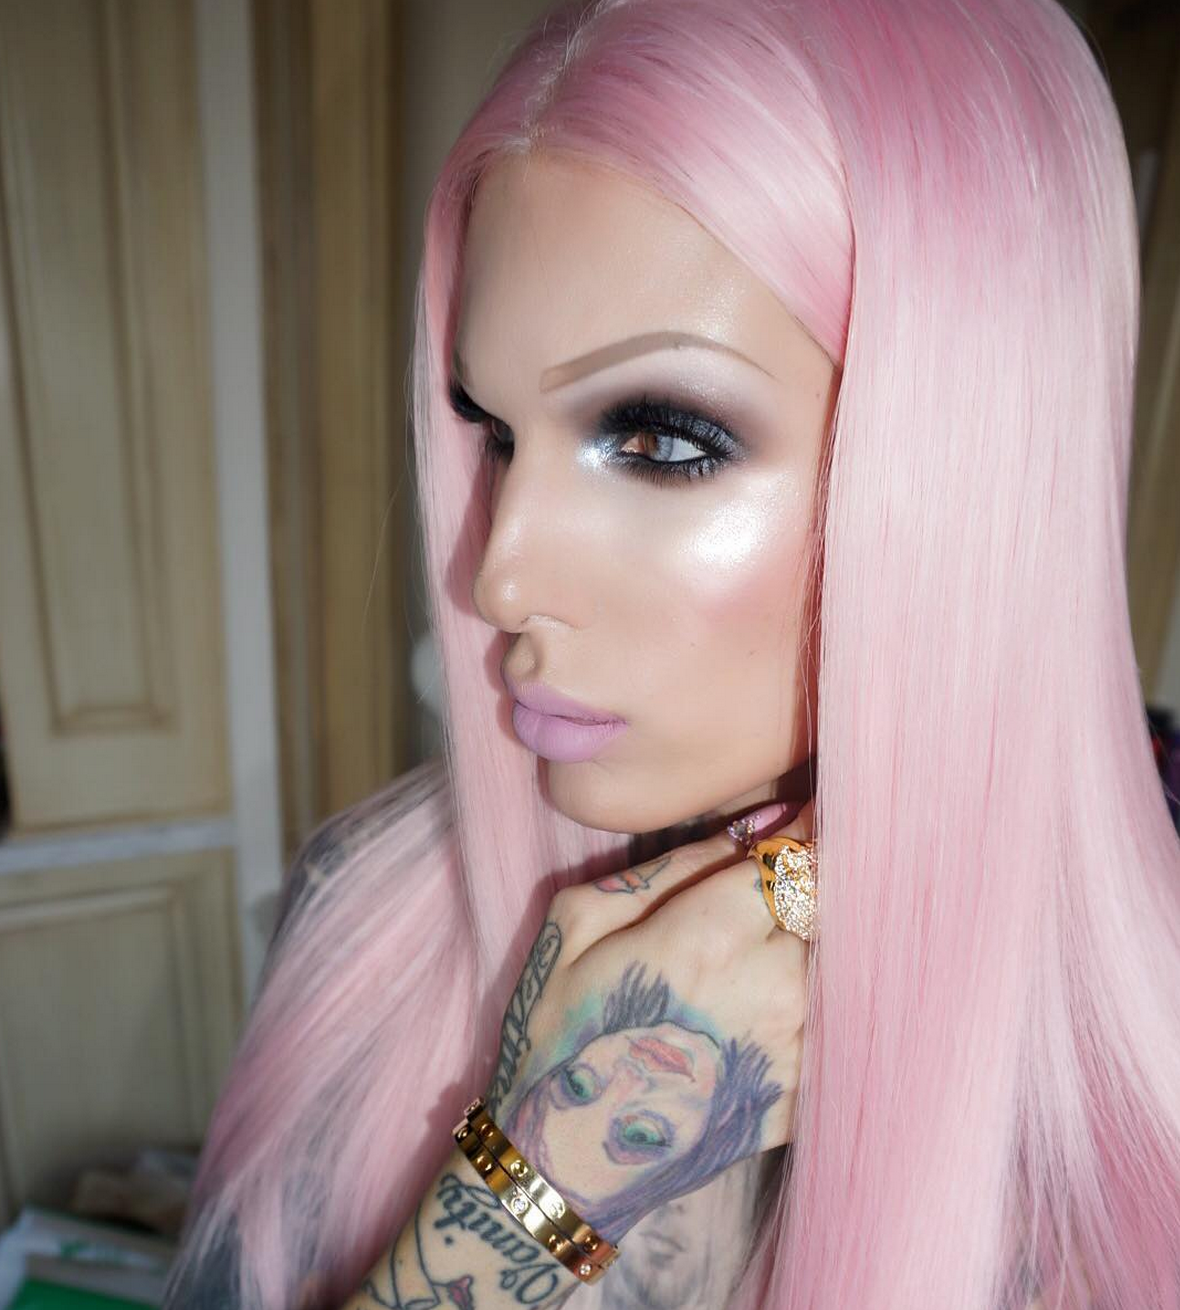 jeffree star - photo #34